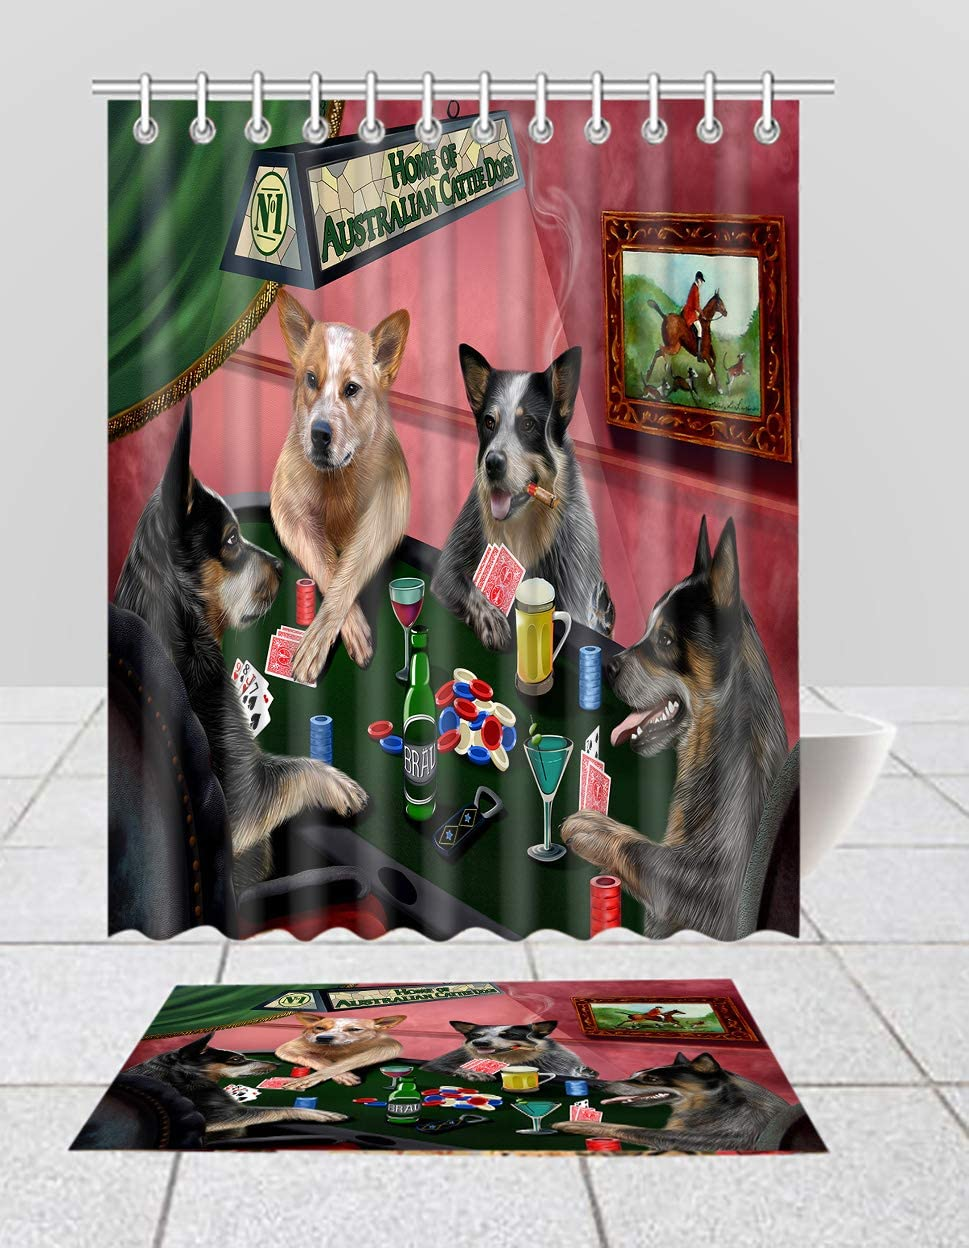 Home of Nippon regular agency Australian Max 61% OFF Cattle Dogs Poker Playing B Shower Curtain